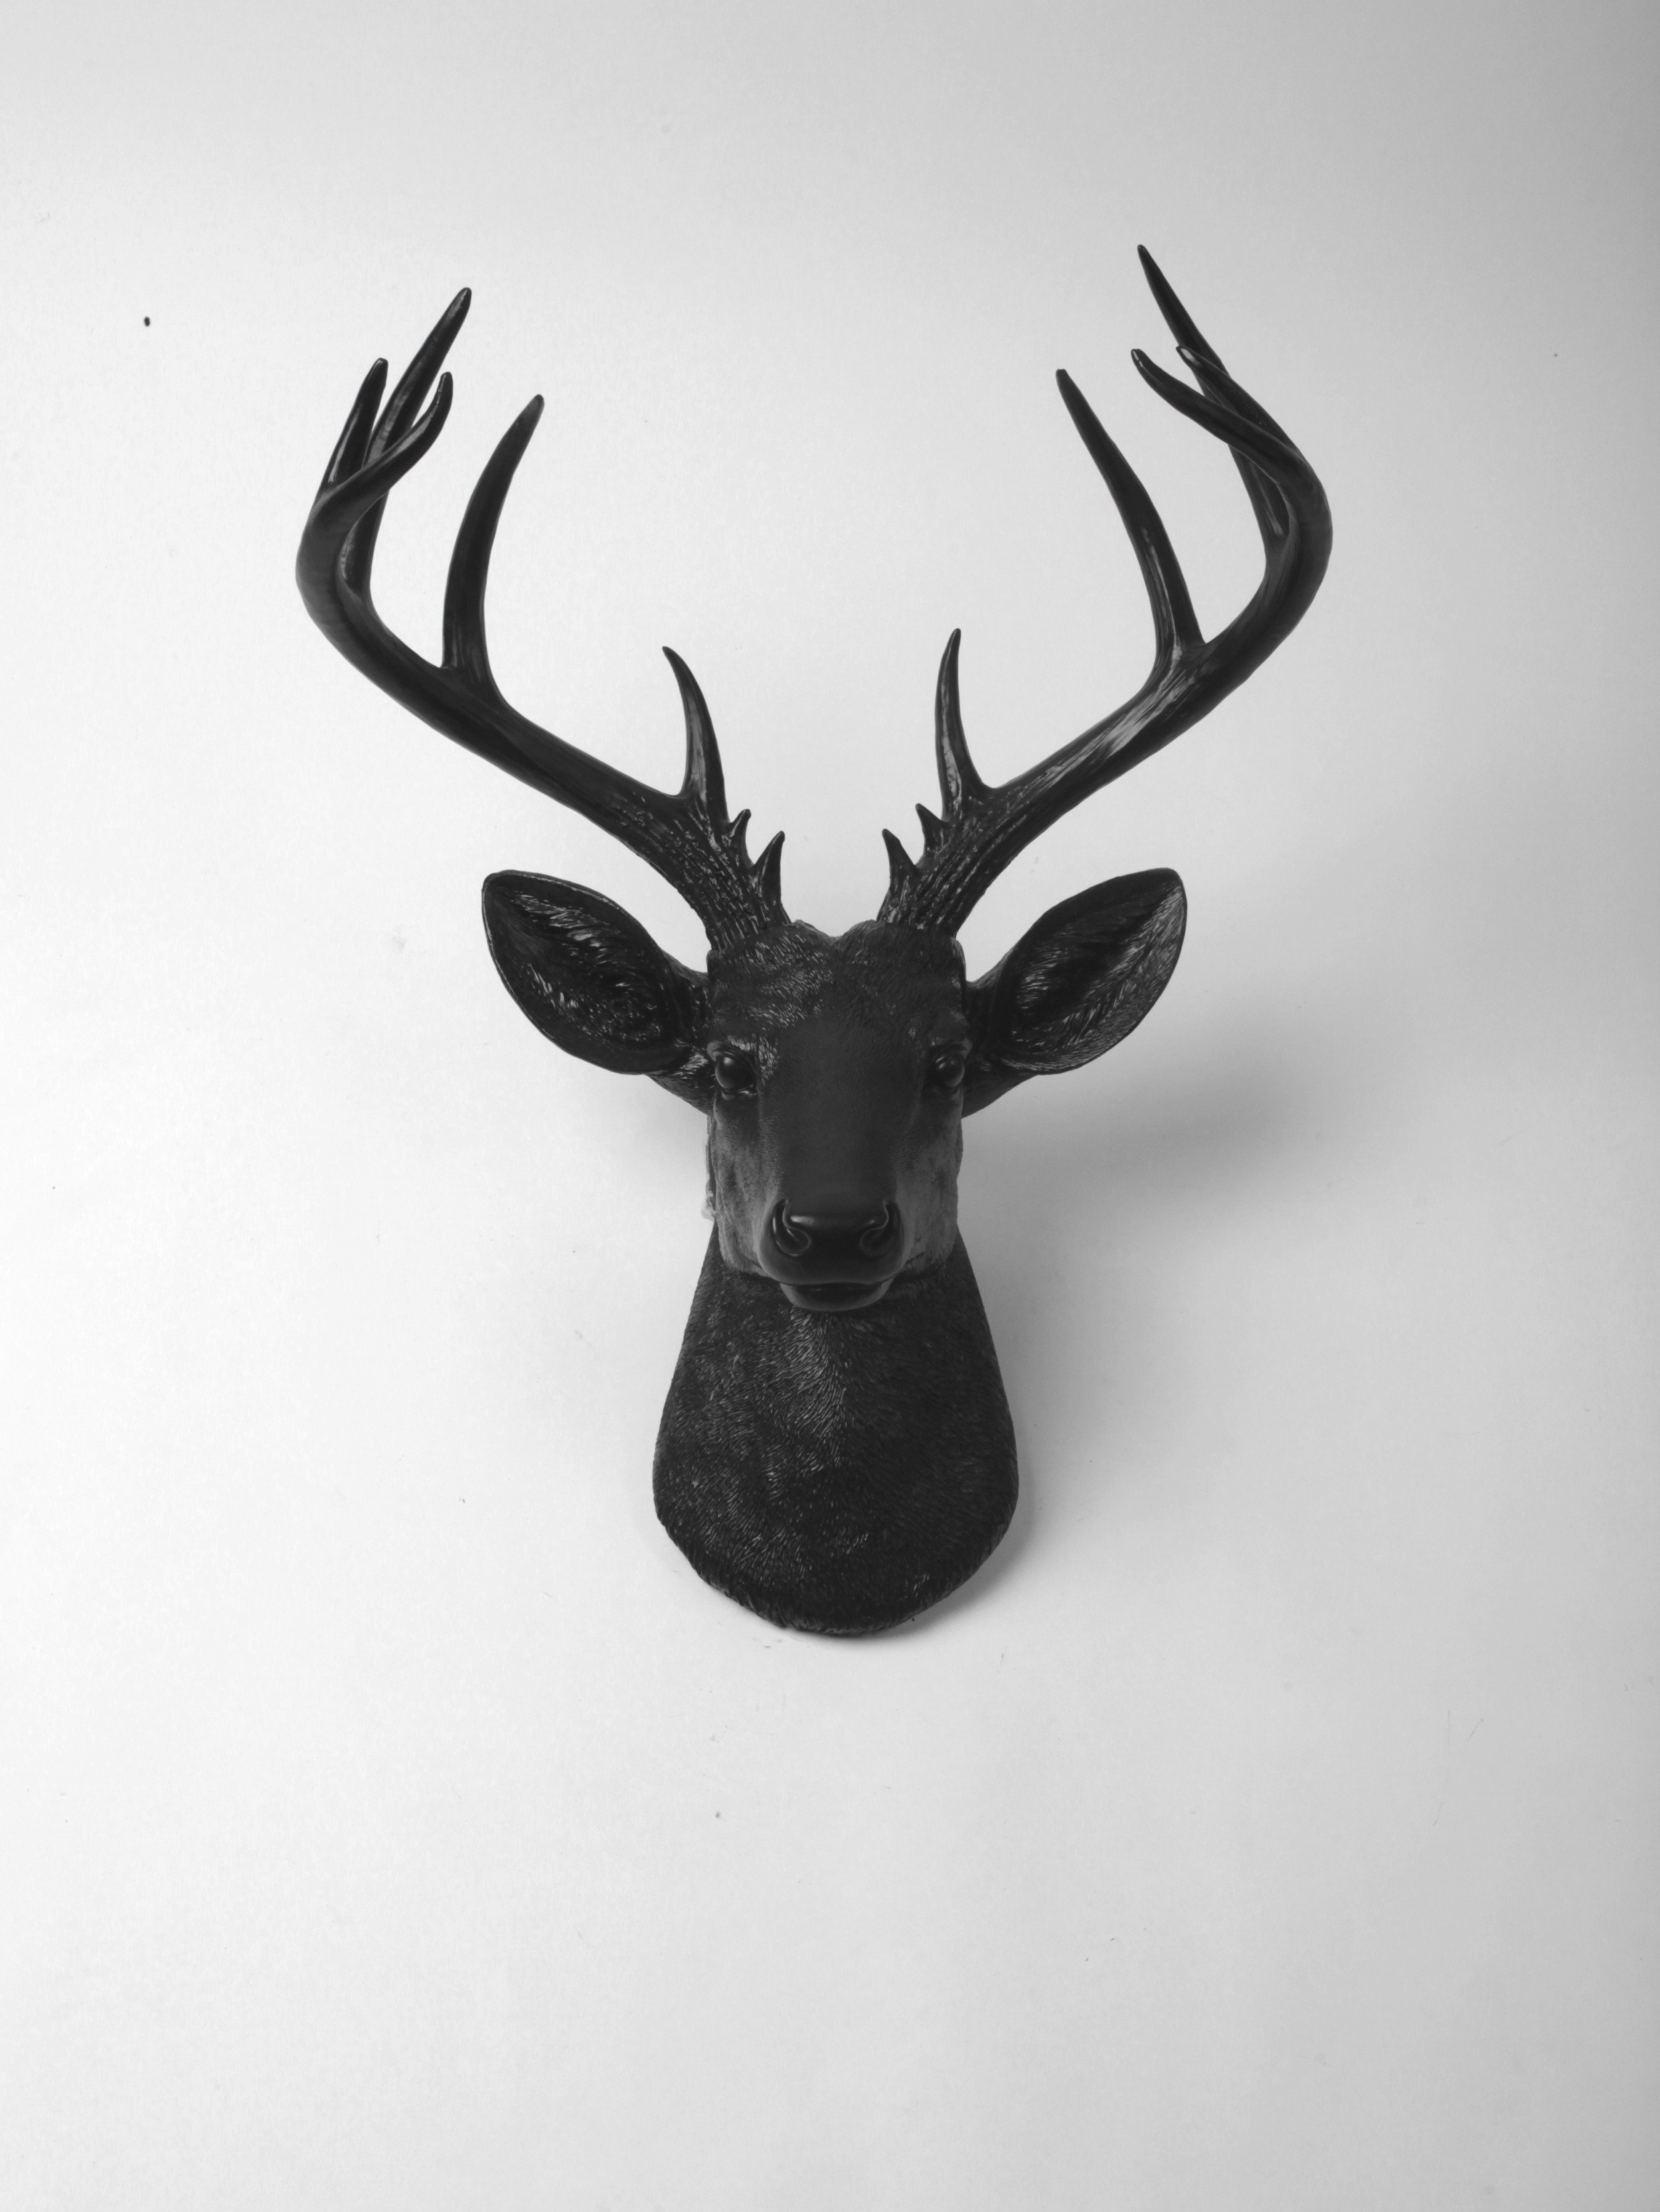 2020 Large Deer Head Faux Taxidermy Wall Decor Within The Xl Ignatius, Stag Deer Head Wall Mount, Black Resin In 2019 (Gallery 8 of 20)